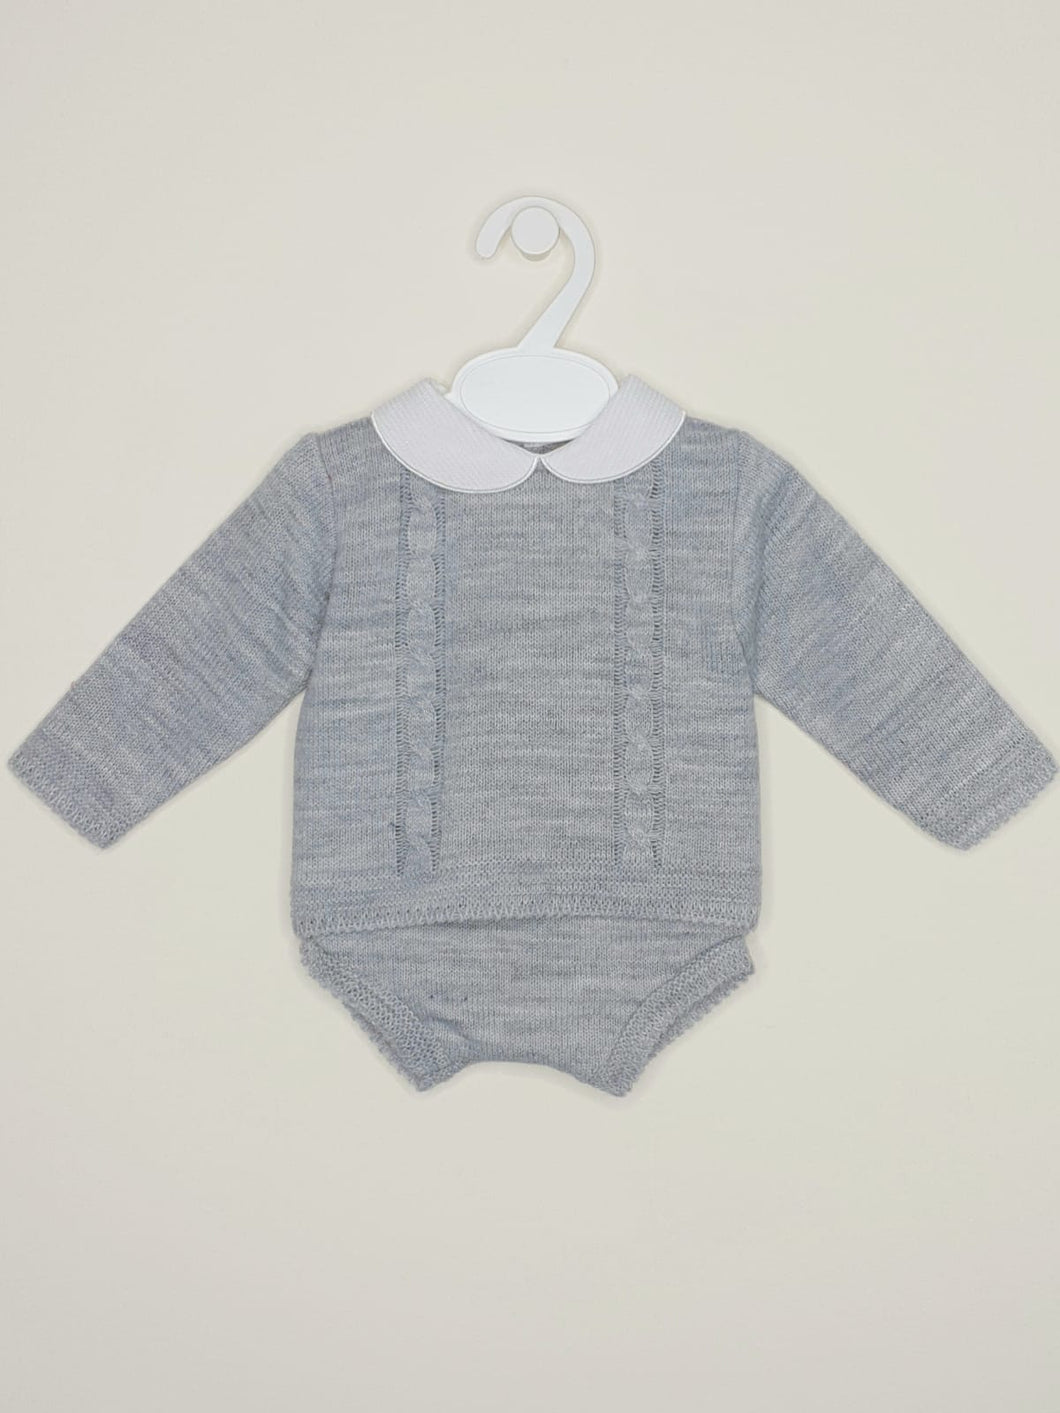 Boys Grey Portuguese Knitted Outfit With Jam Pants